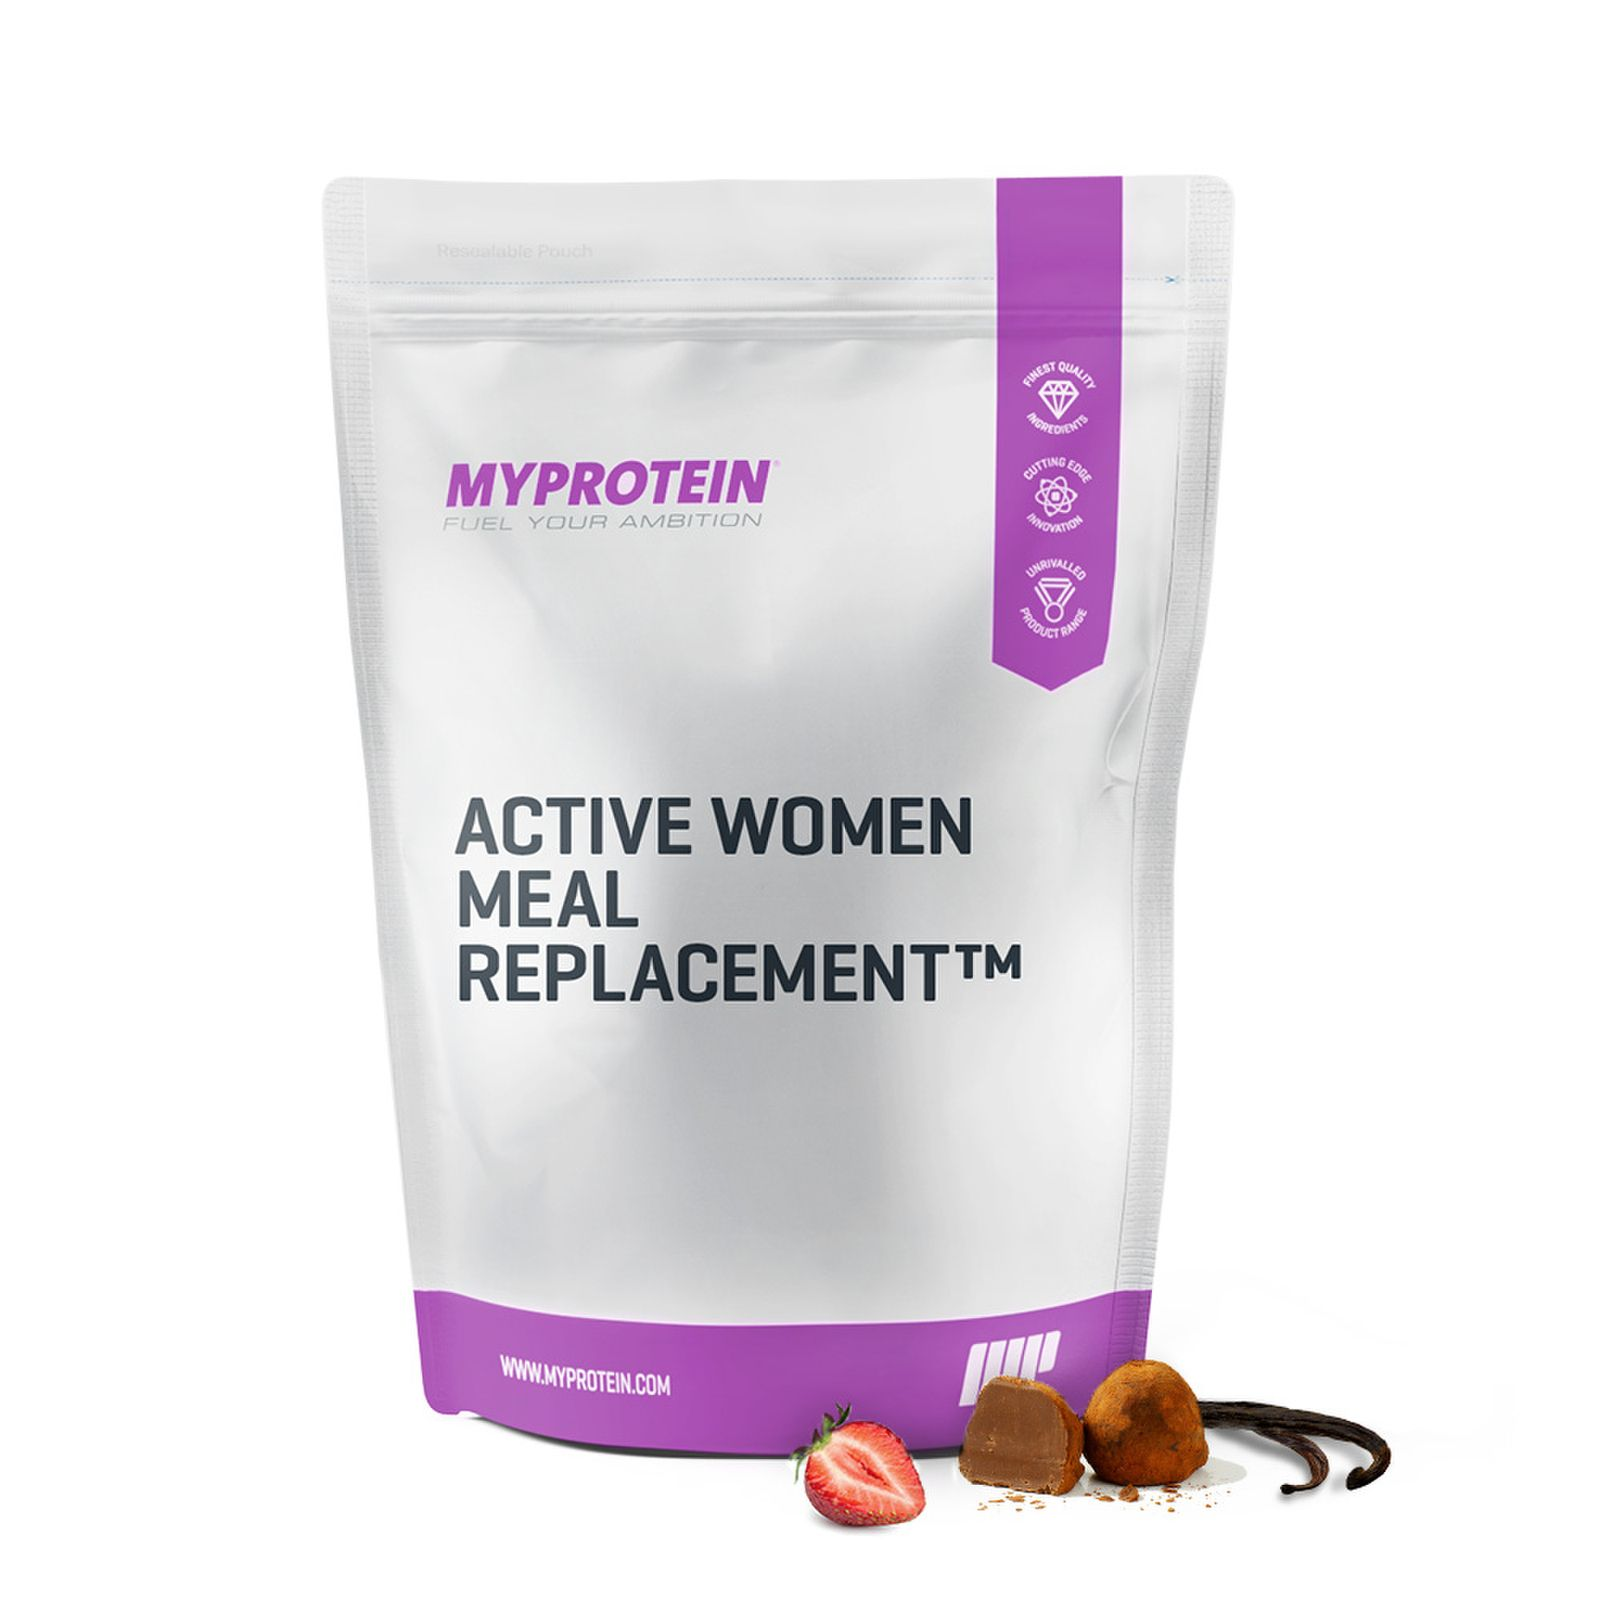 ACTIVE WOMEN MEAL REPLACEMENT™ Very low calorie diet shake ...